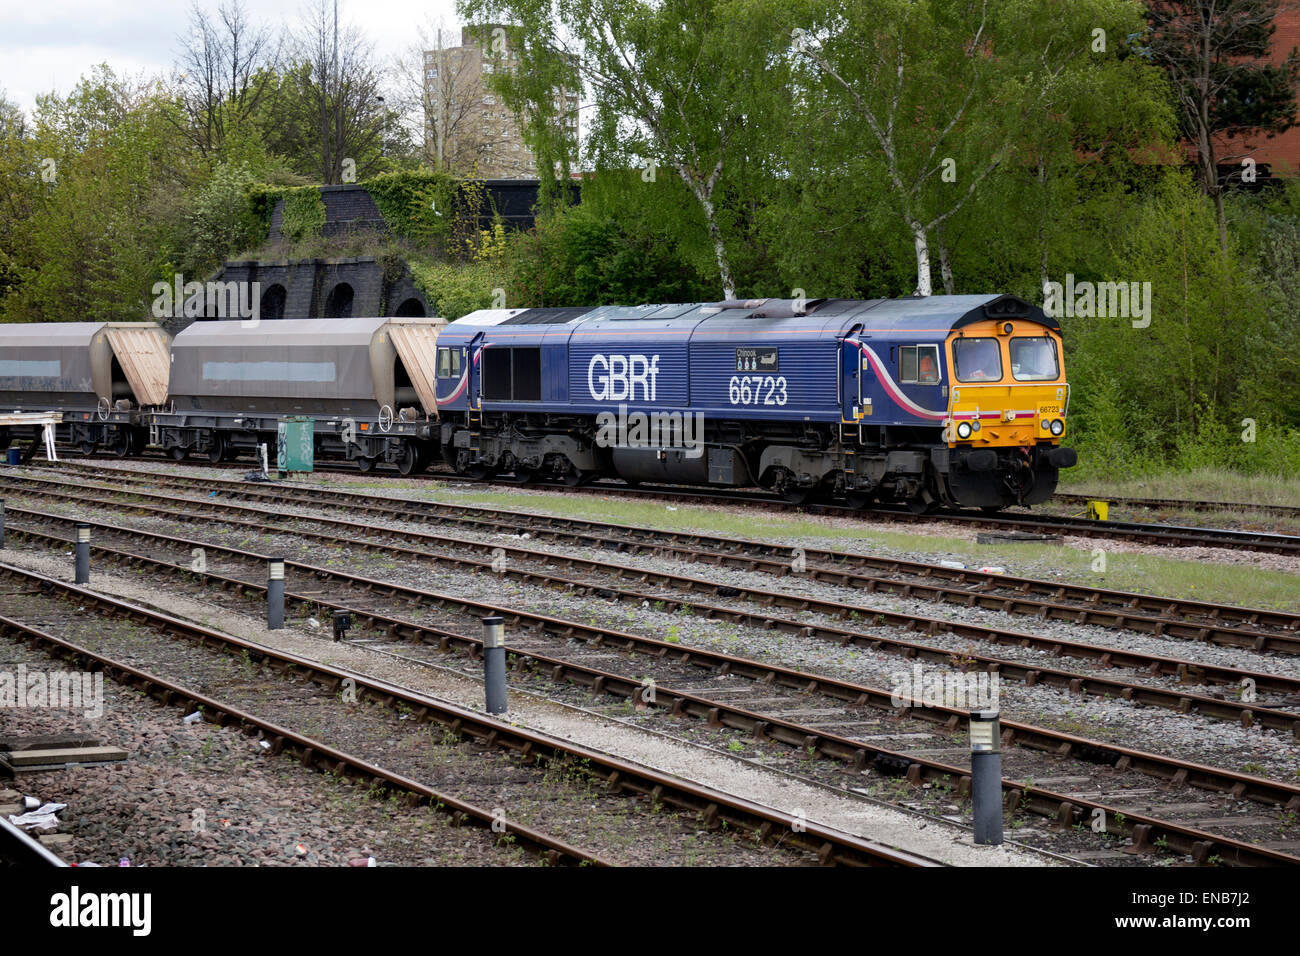 Freight train passing through Leicester station, Leicestershire, UK - Stock Image